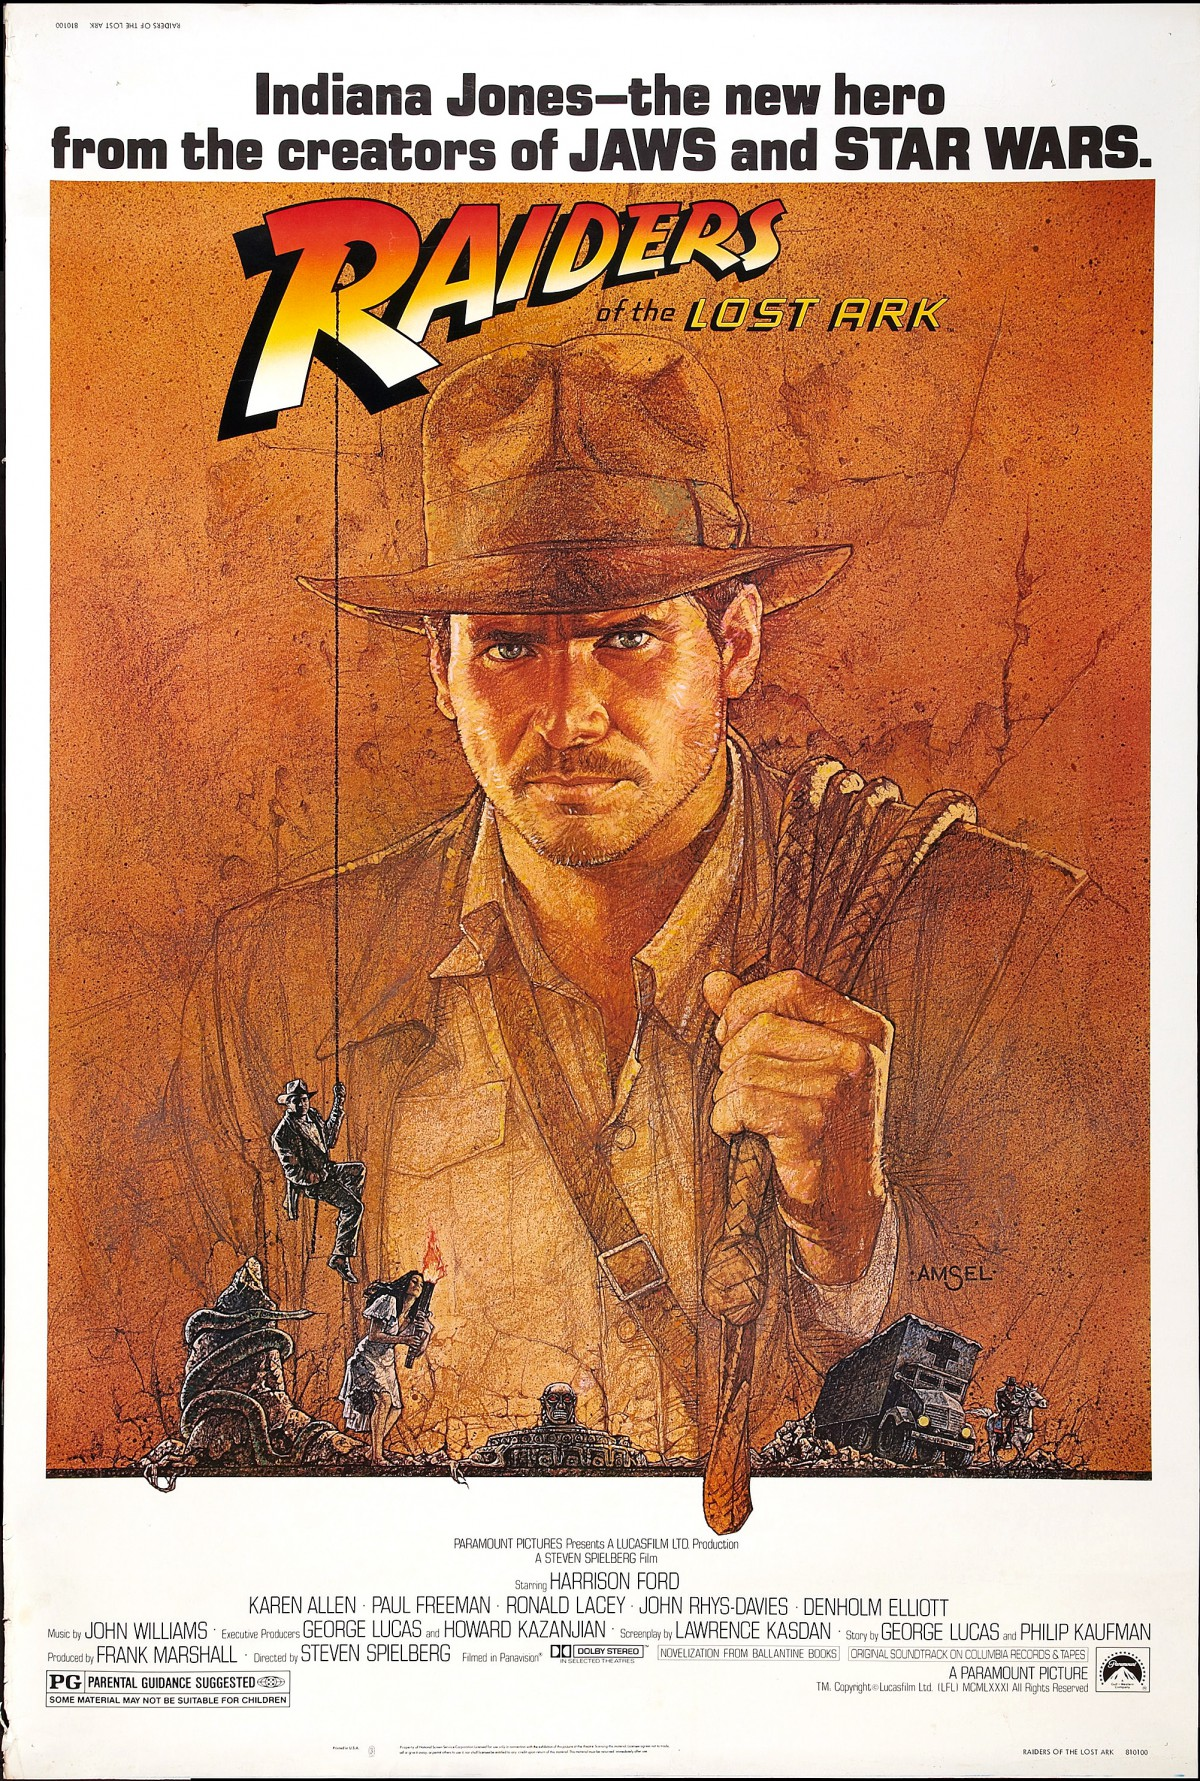 26. Raiders of the Lost Ark (1981)